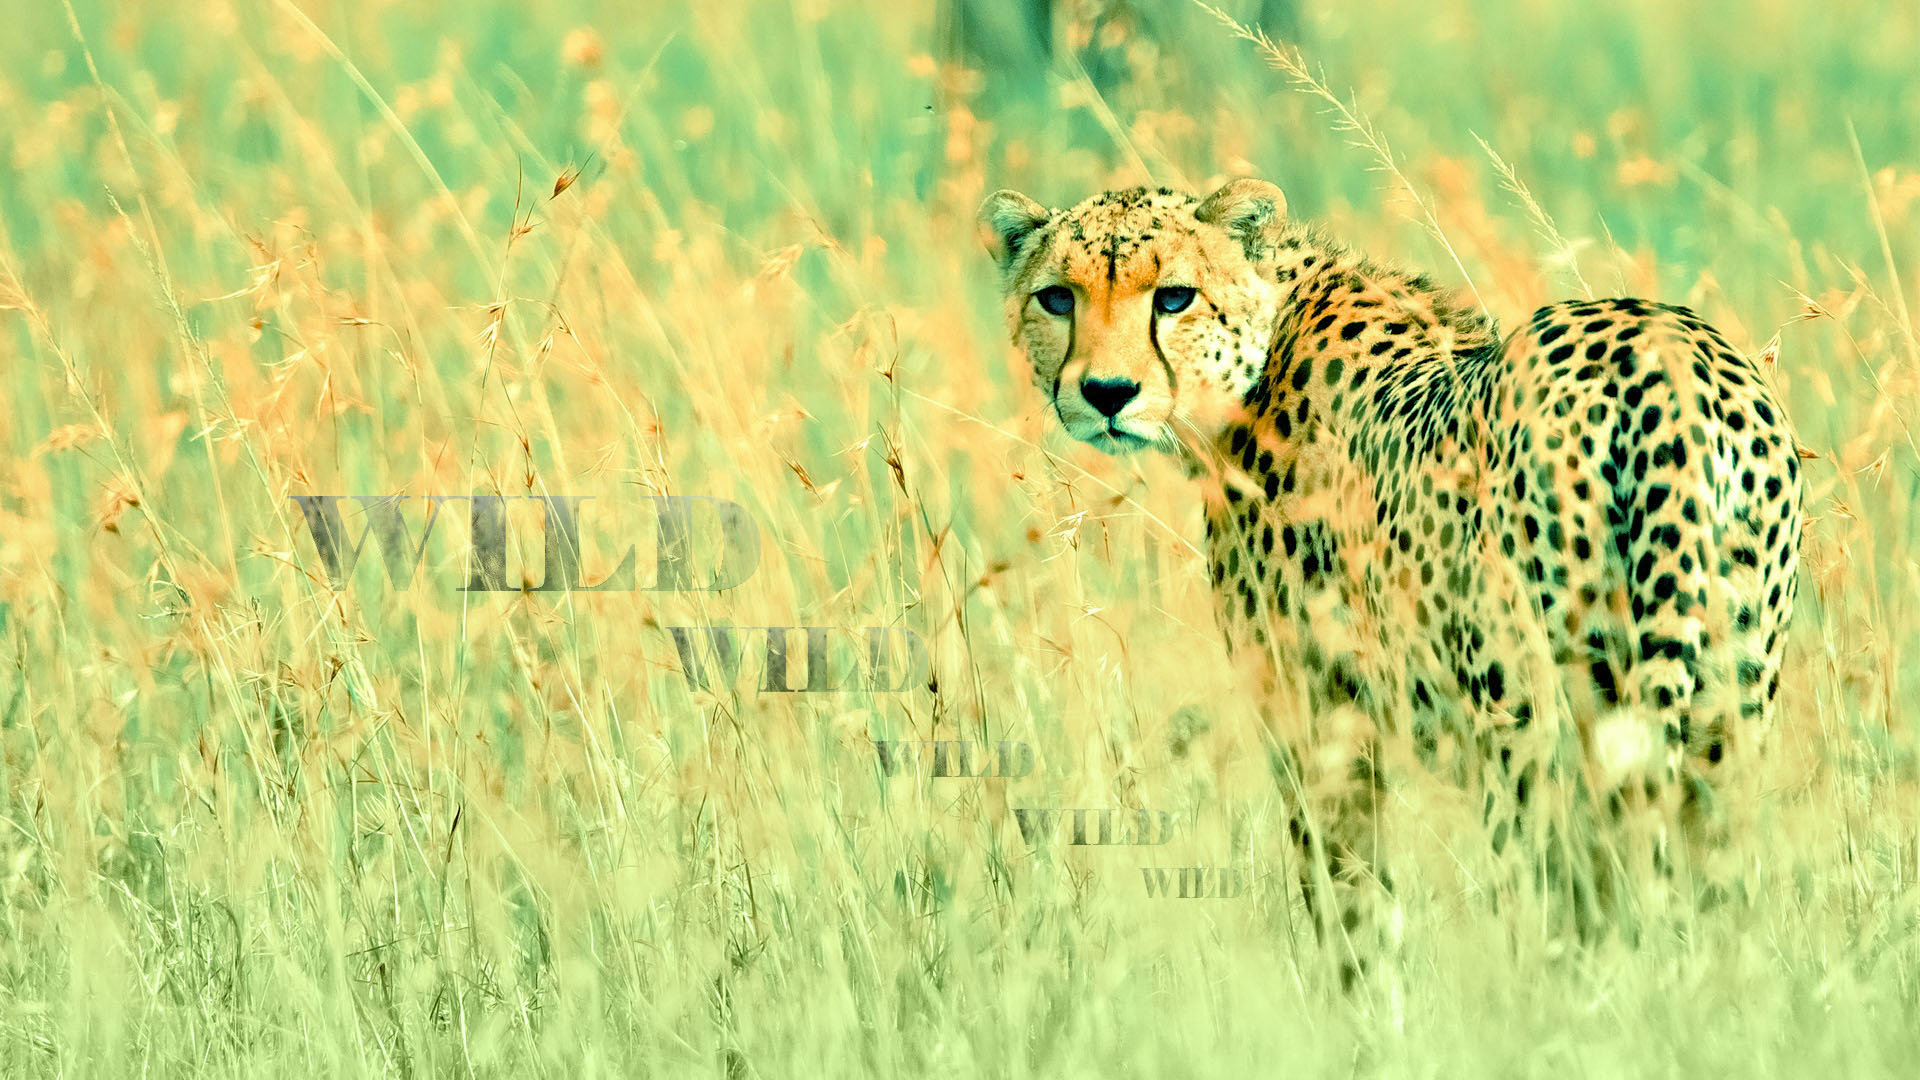 Download full hd 1080p Cheetah PC wallpaper ID:161910 for free